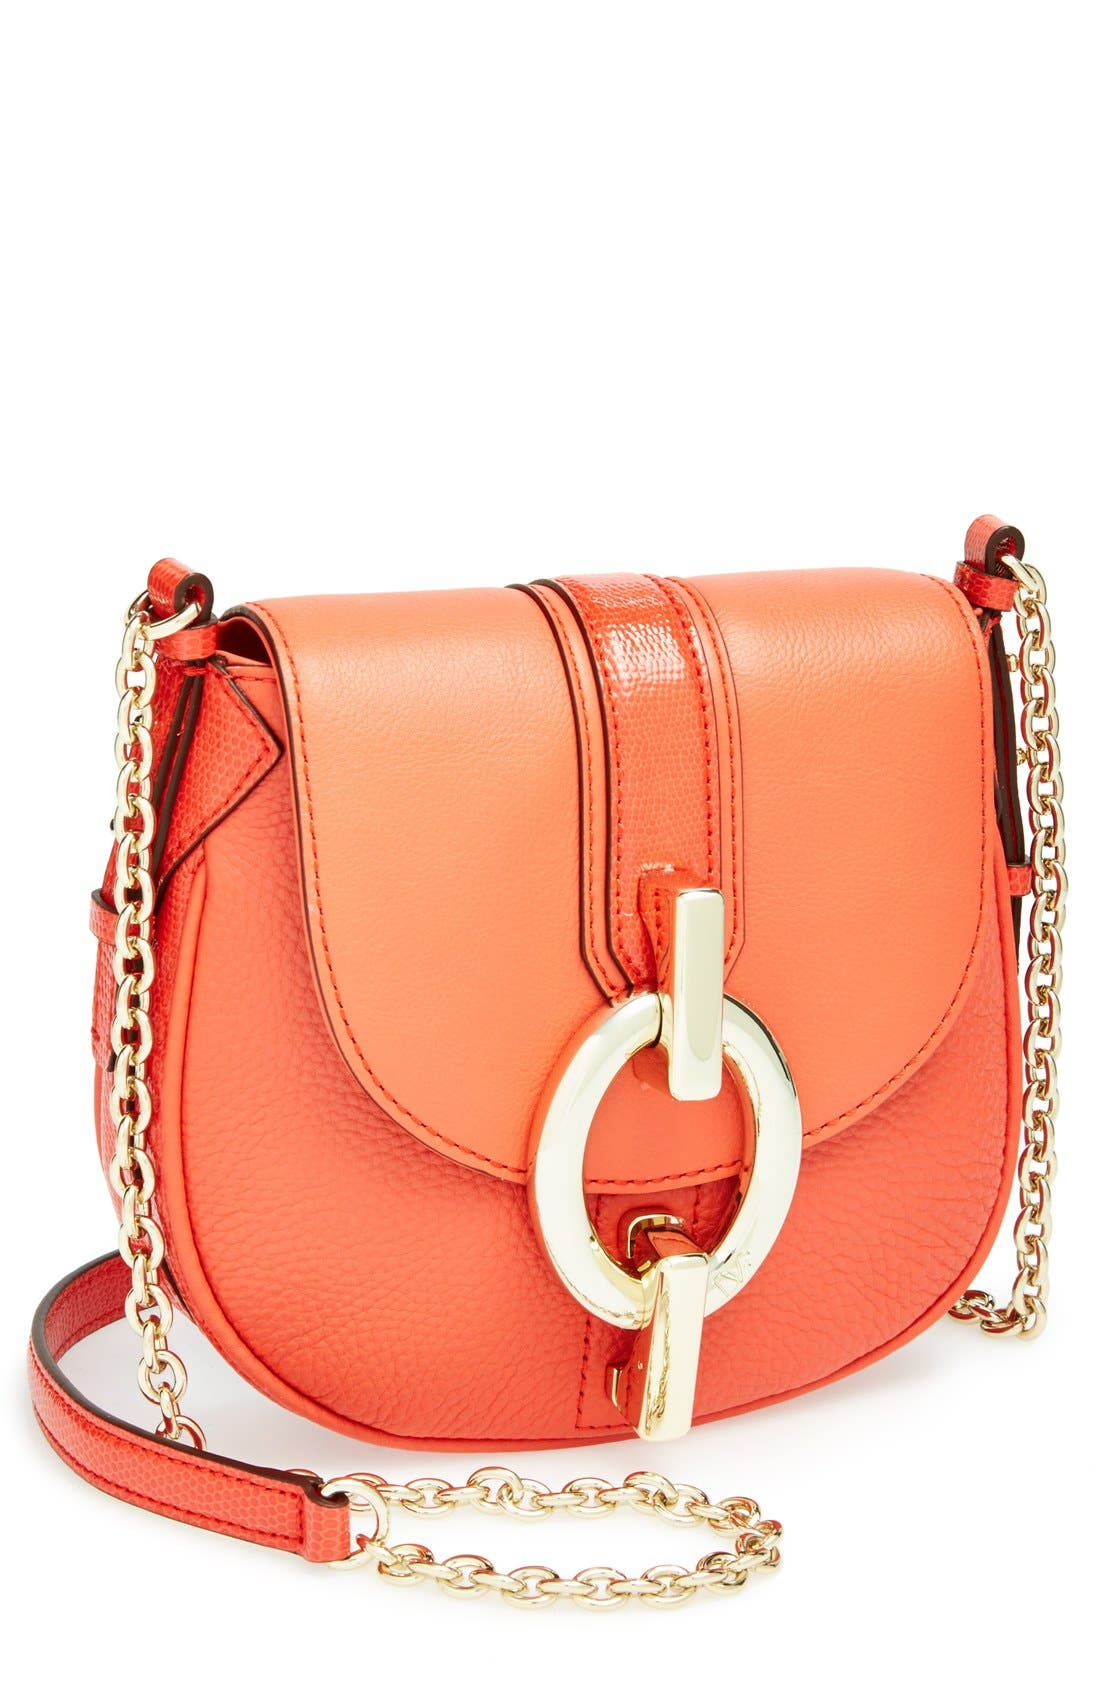 Alternate Image 1 Selected - Diane von Furstenberg 'Sutra - Mini' Leather Crossbody Bag